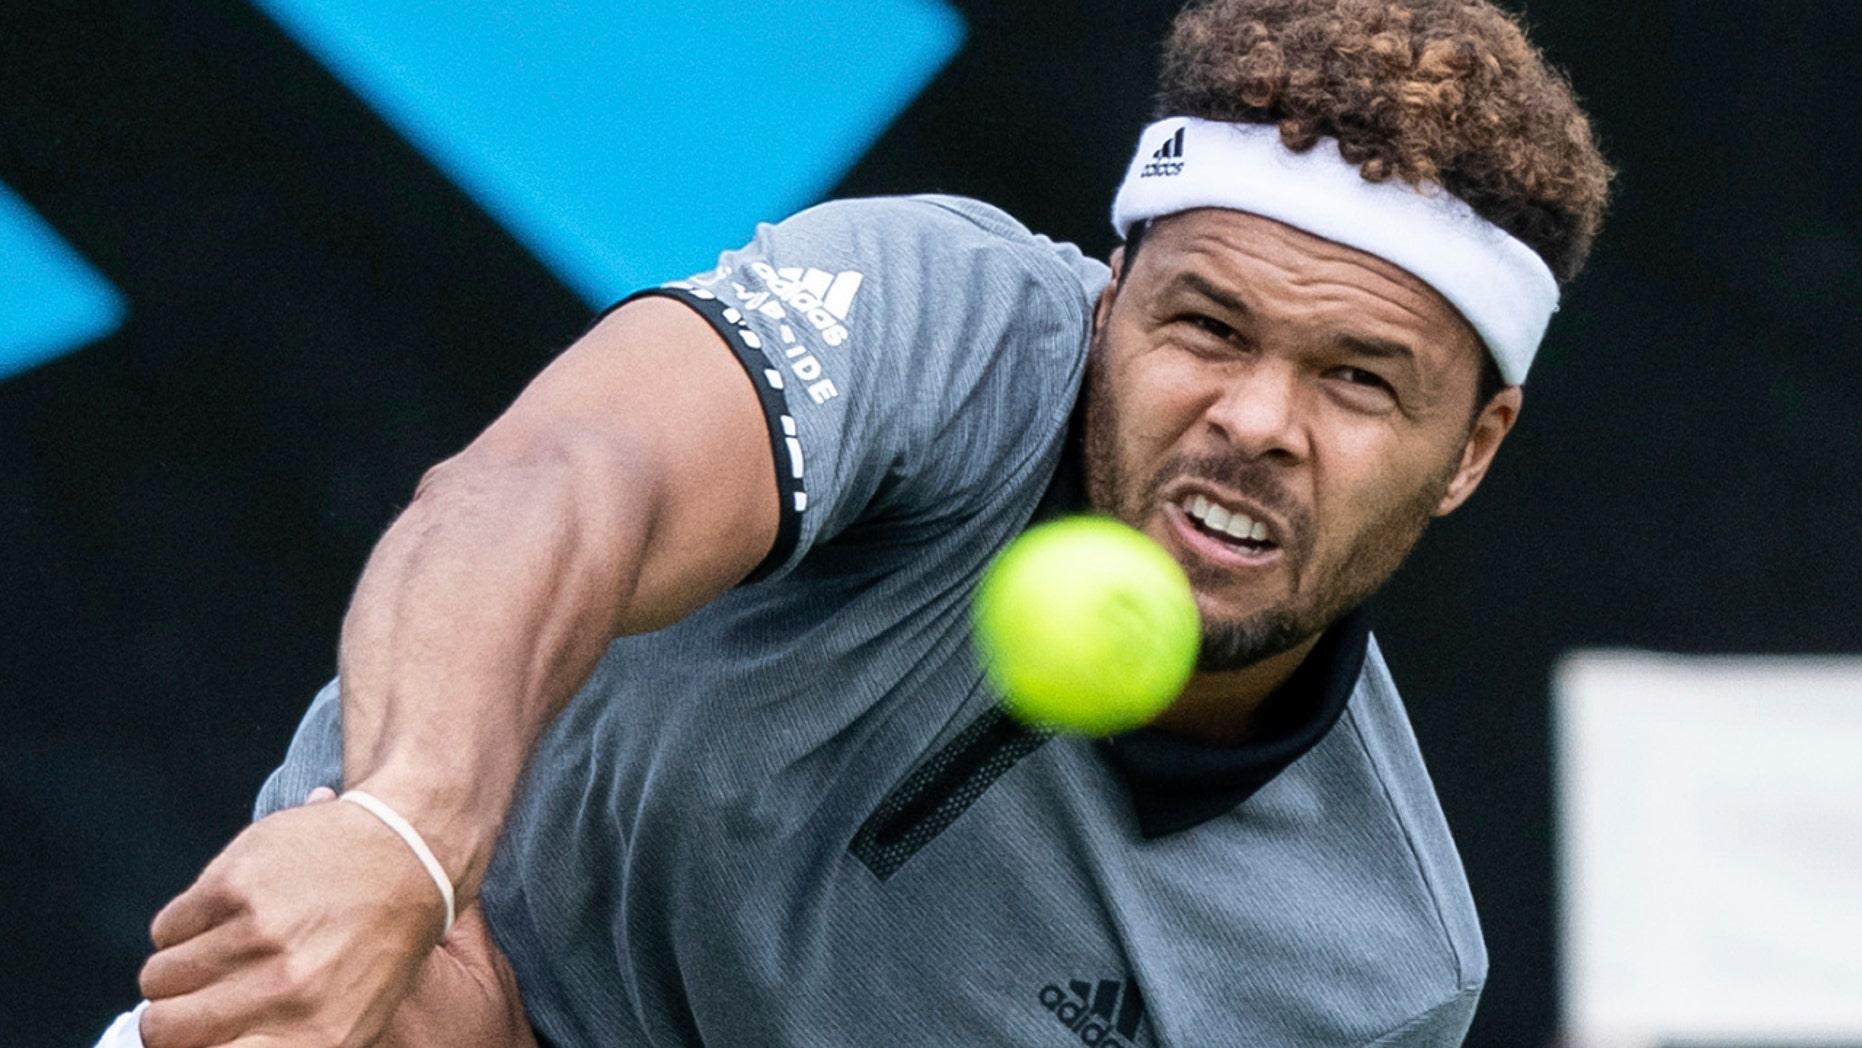 Jo-Wilfried Tsonga serves the ball to Mischa Zverev during their first round match at the ATP tennis tournament in Stuttgart, Germany, Monday, June 10, 2019. (Silas Stein/dpa via AP)